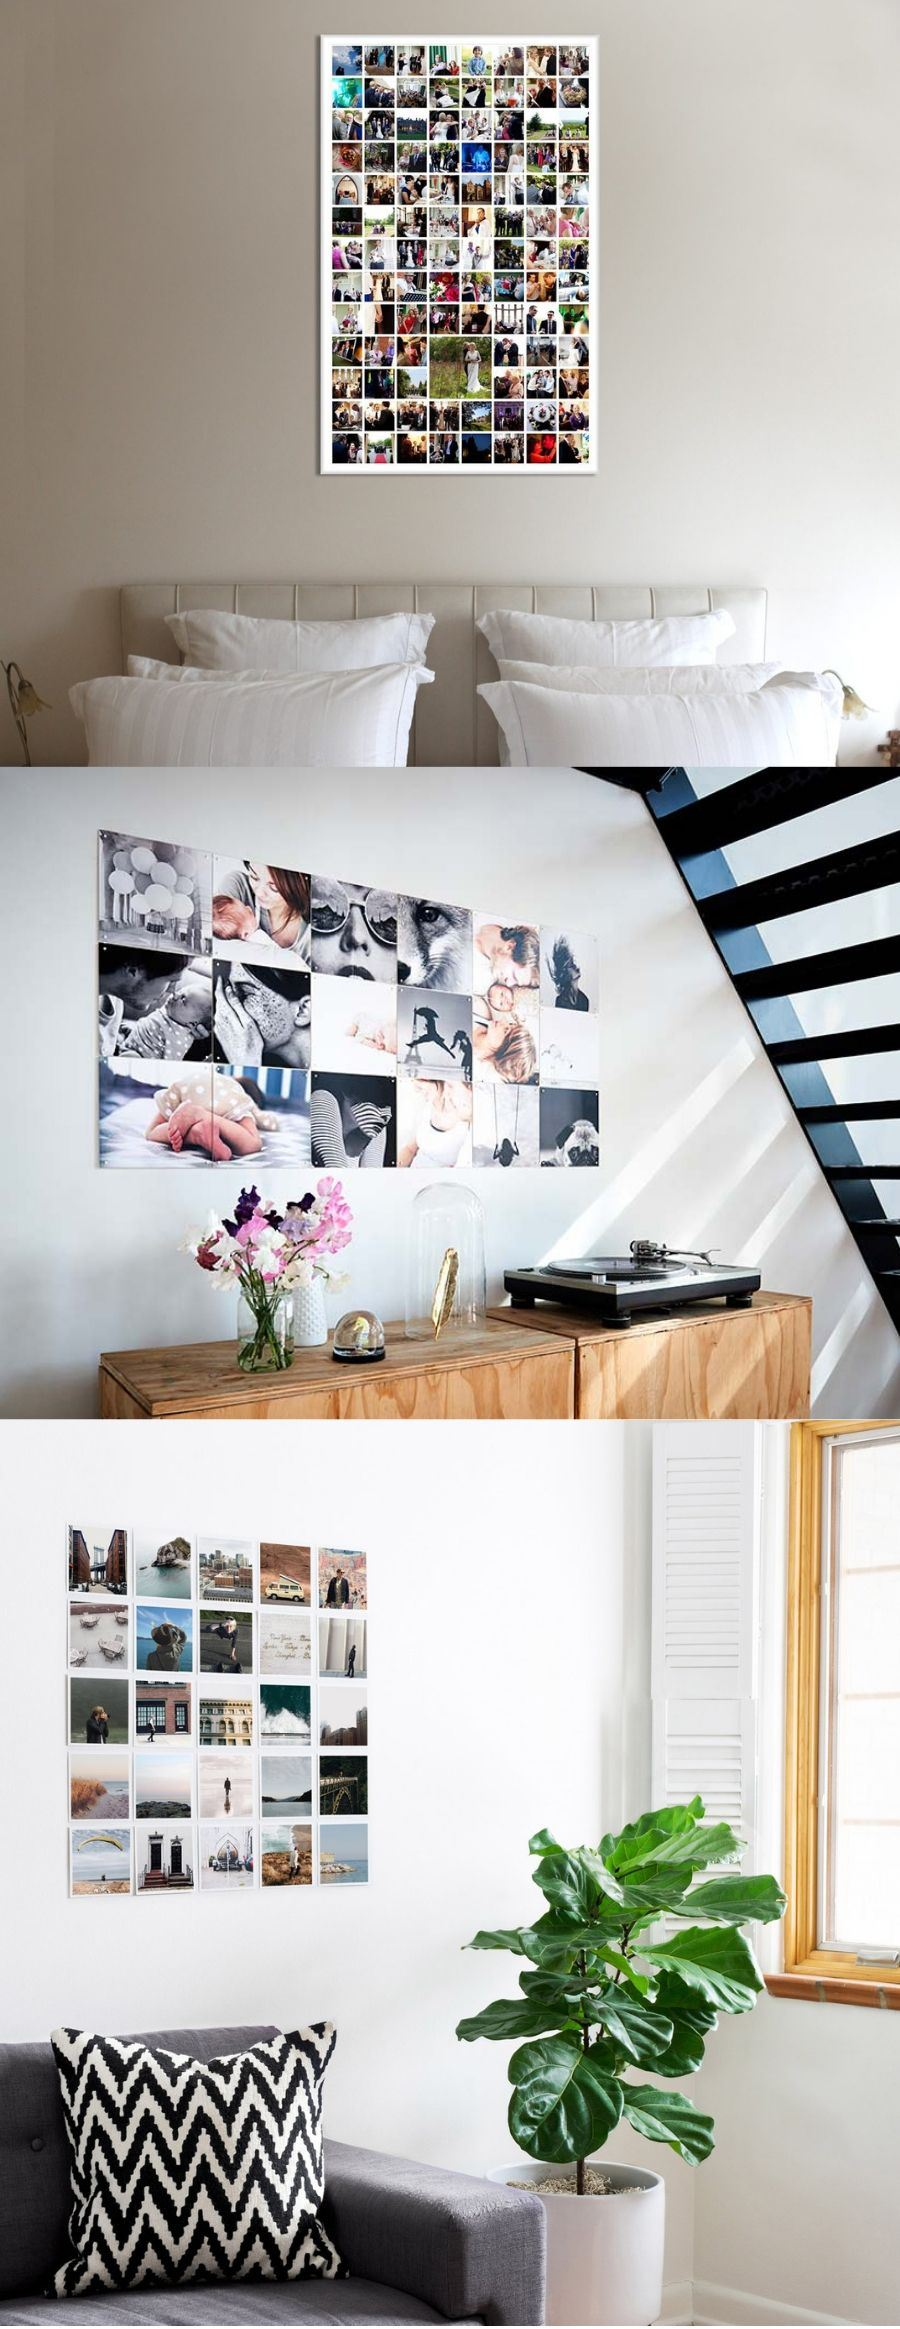 photo collage ideas for wall